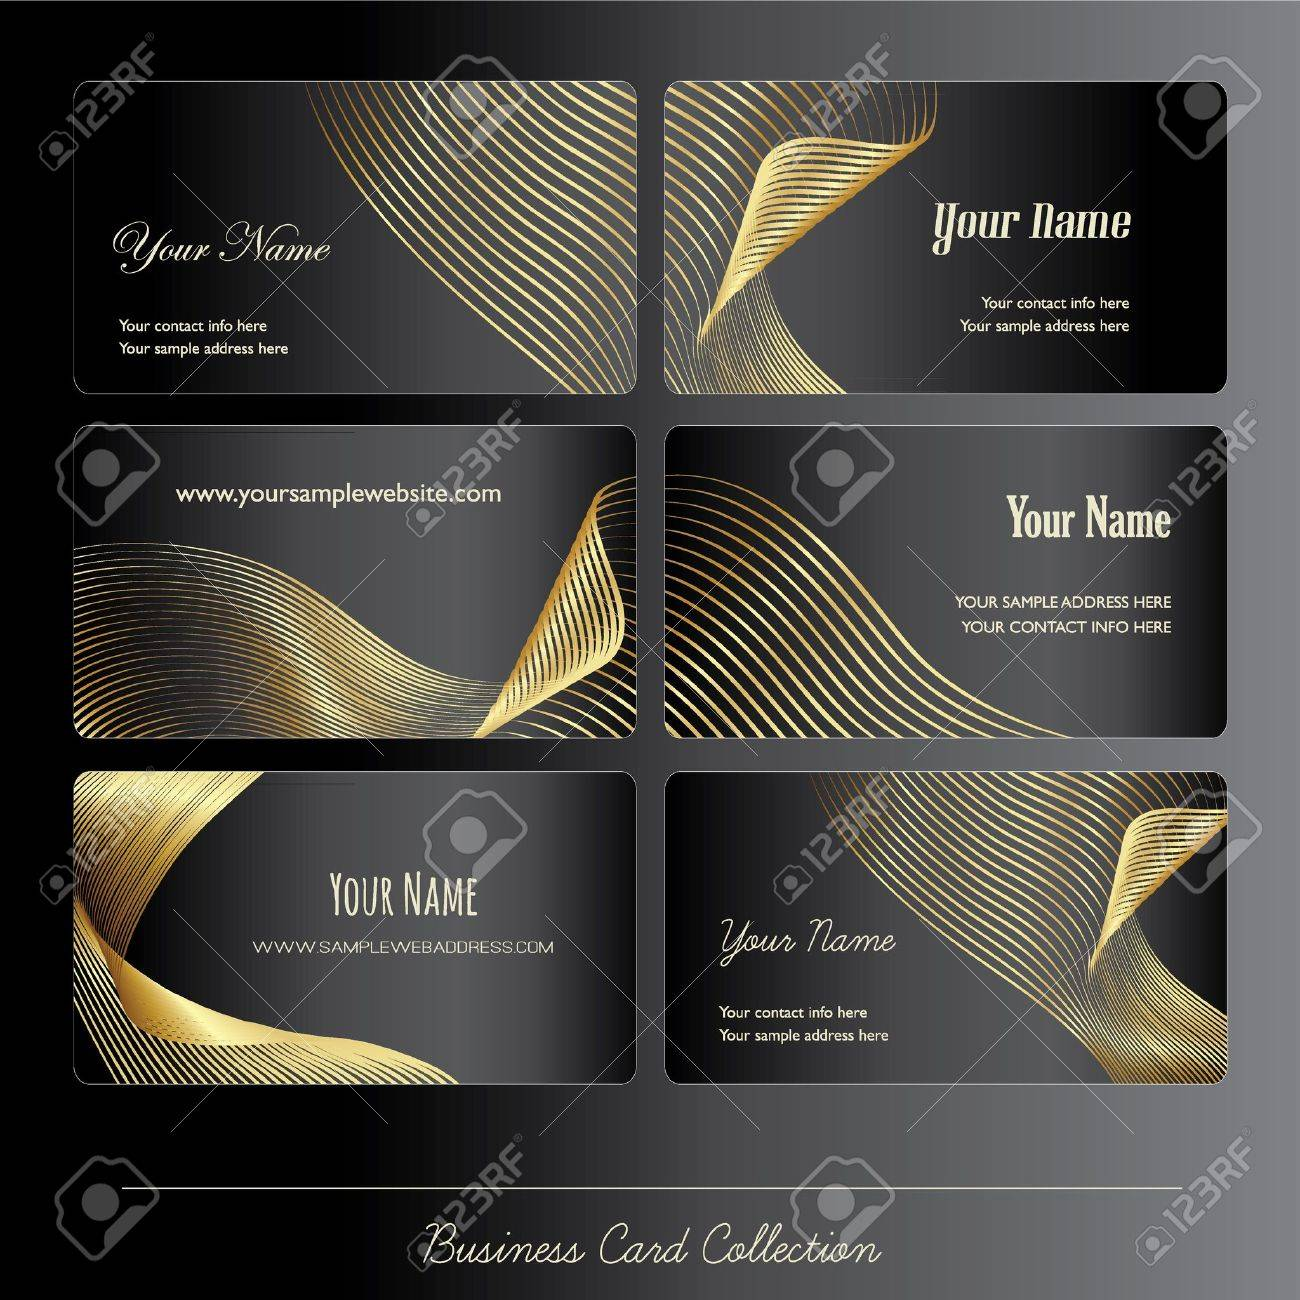 Business cards san jose images free business cards business cards san jose choice image free business cards esl business cards choice image free business magicingreecefo Image collections